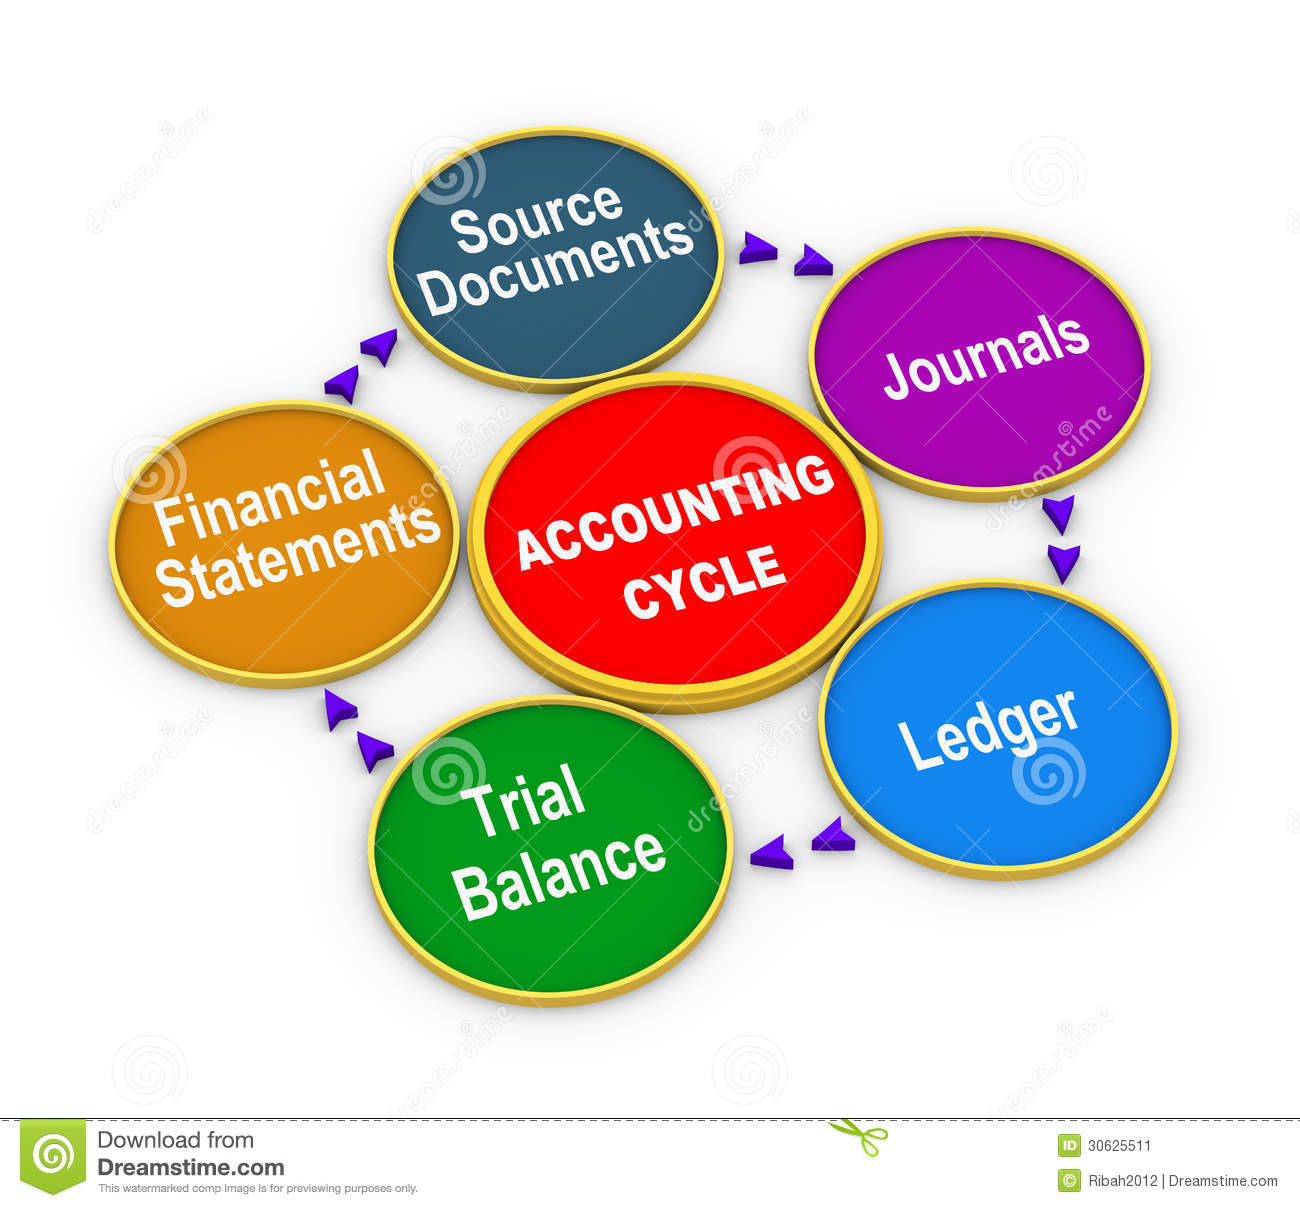 the cycle of accounting process Introduction to financial accounting completing the accounting cycle (chapter 4) february 20th, 2013 by professor victoria chiu the lecture begins with an.